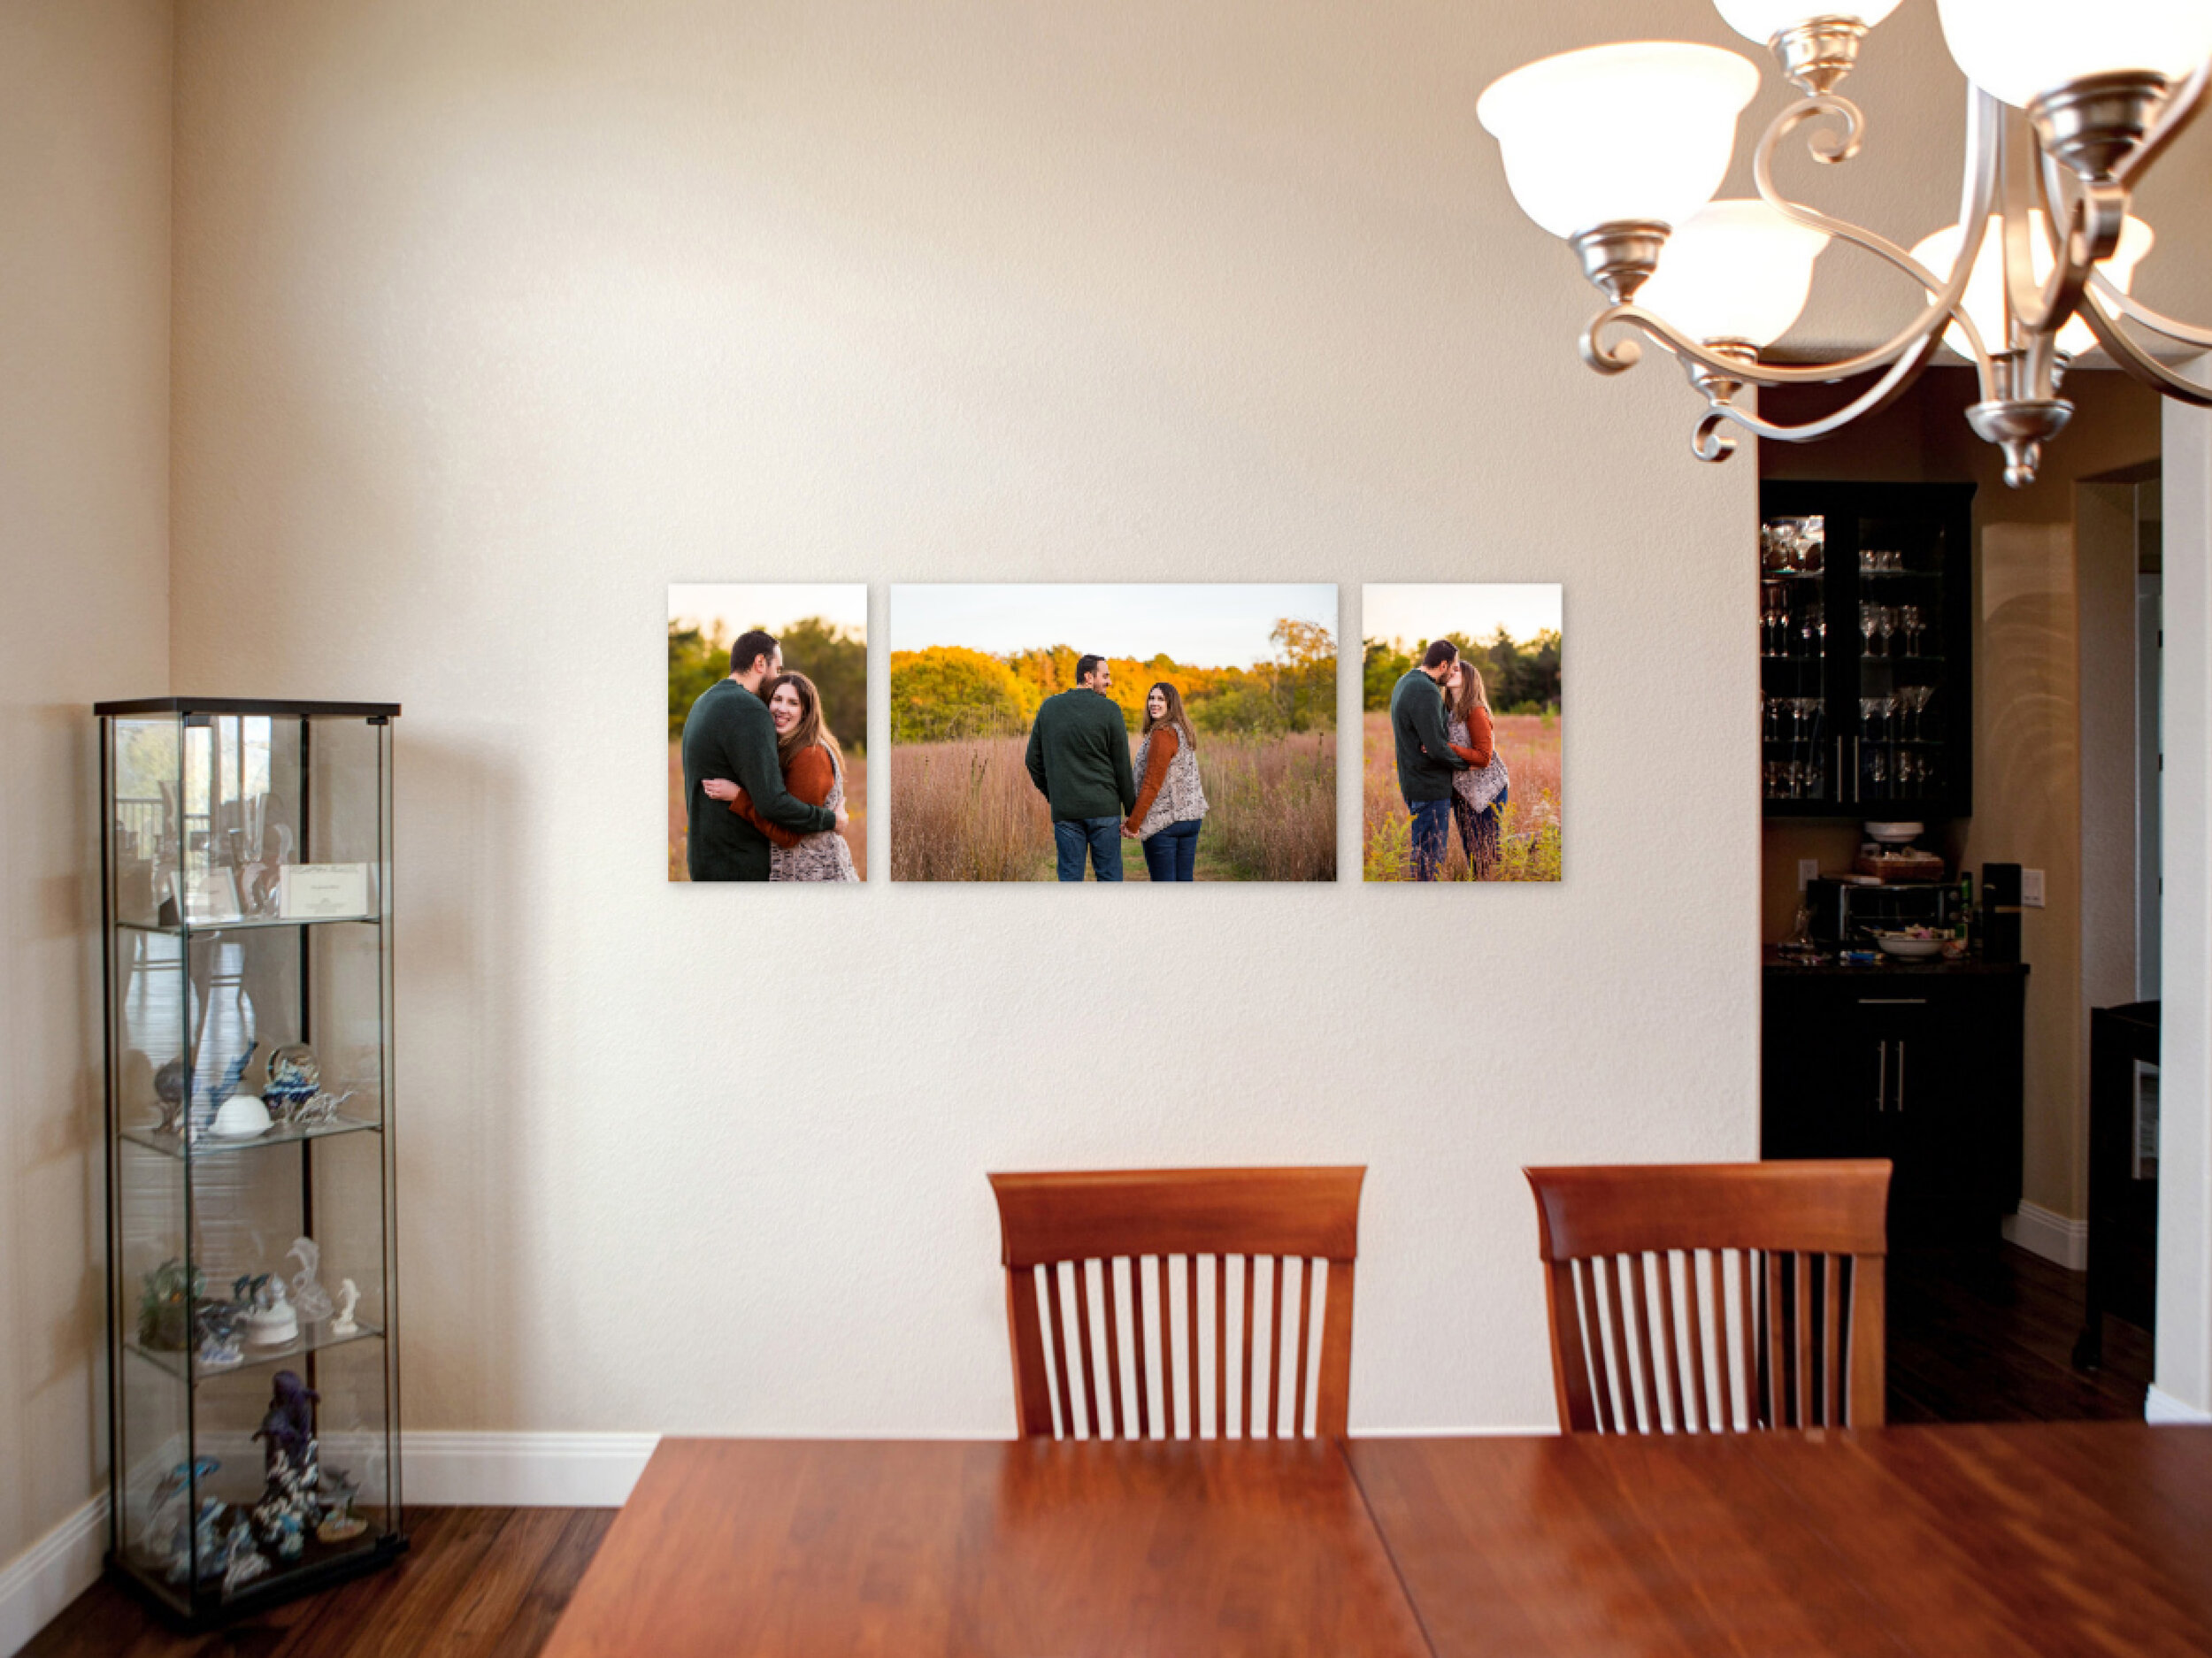 Wall Art Installation Blog Tania Watt Photography Lansing Michigan Wedding Portrait Photographer Tania Watt Photography